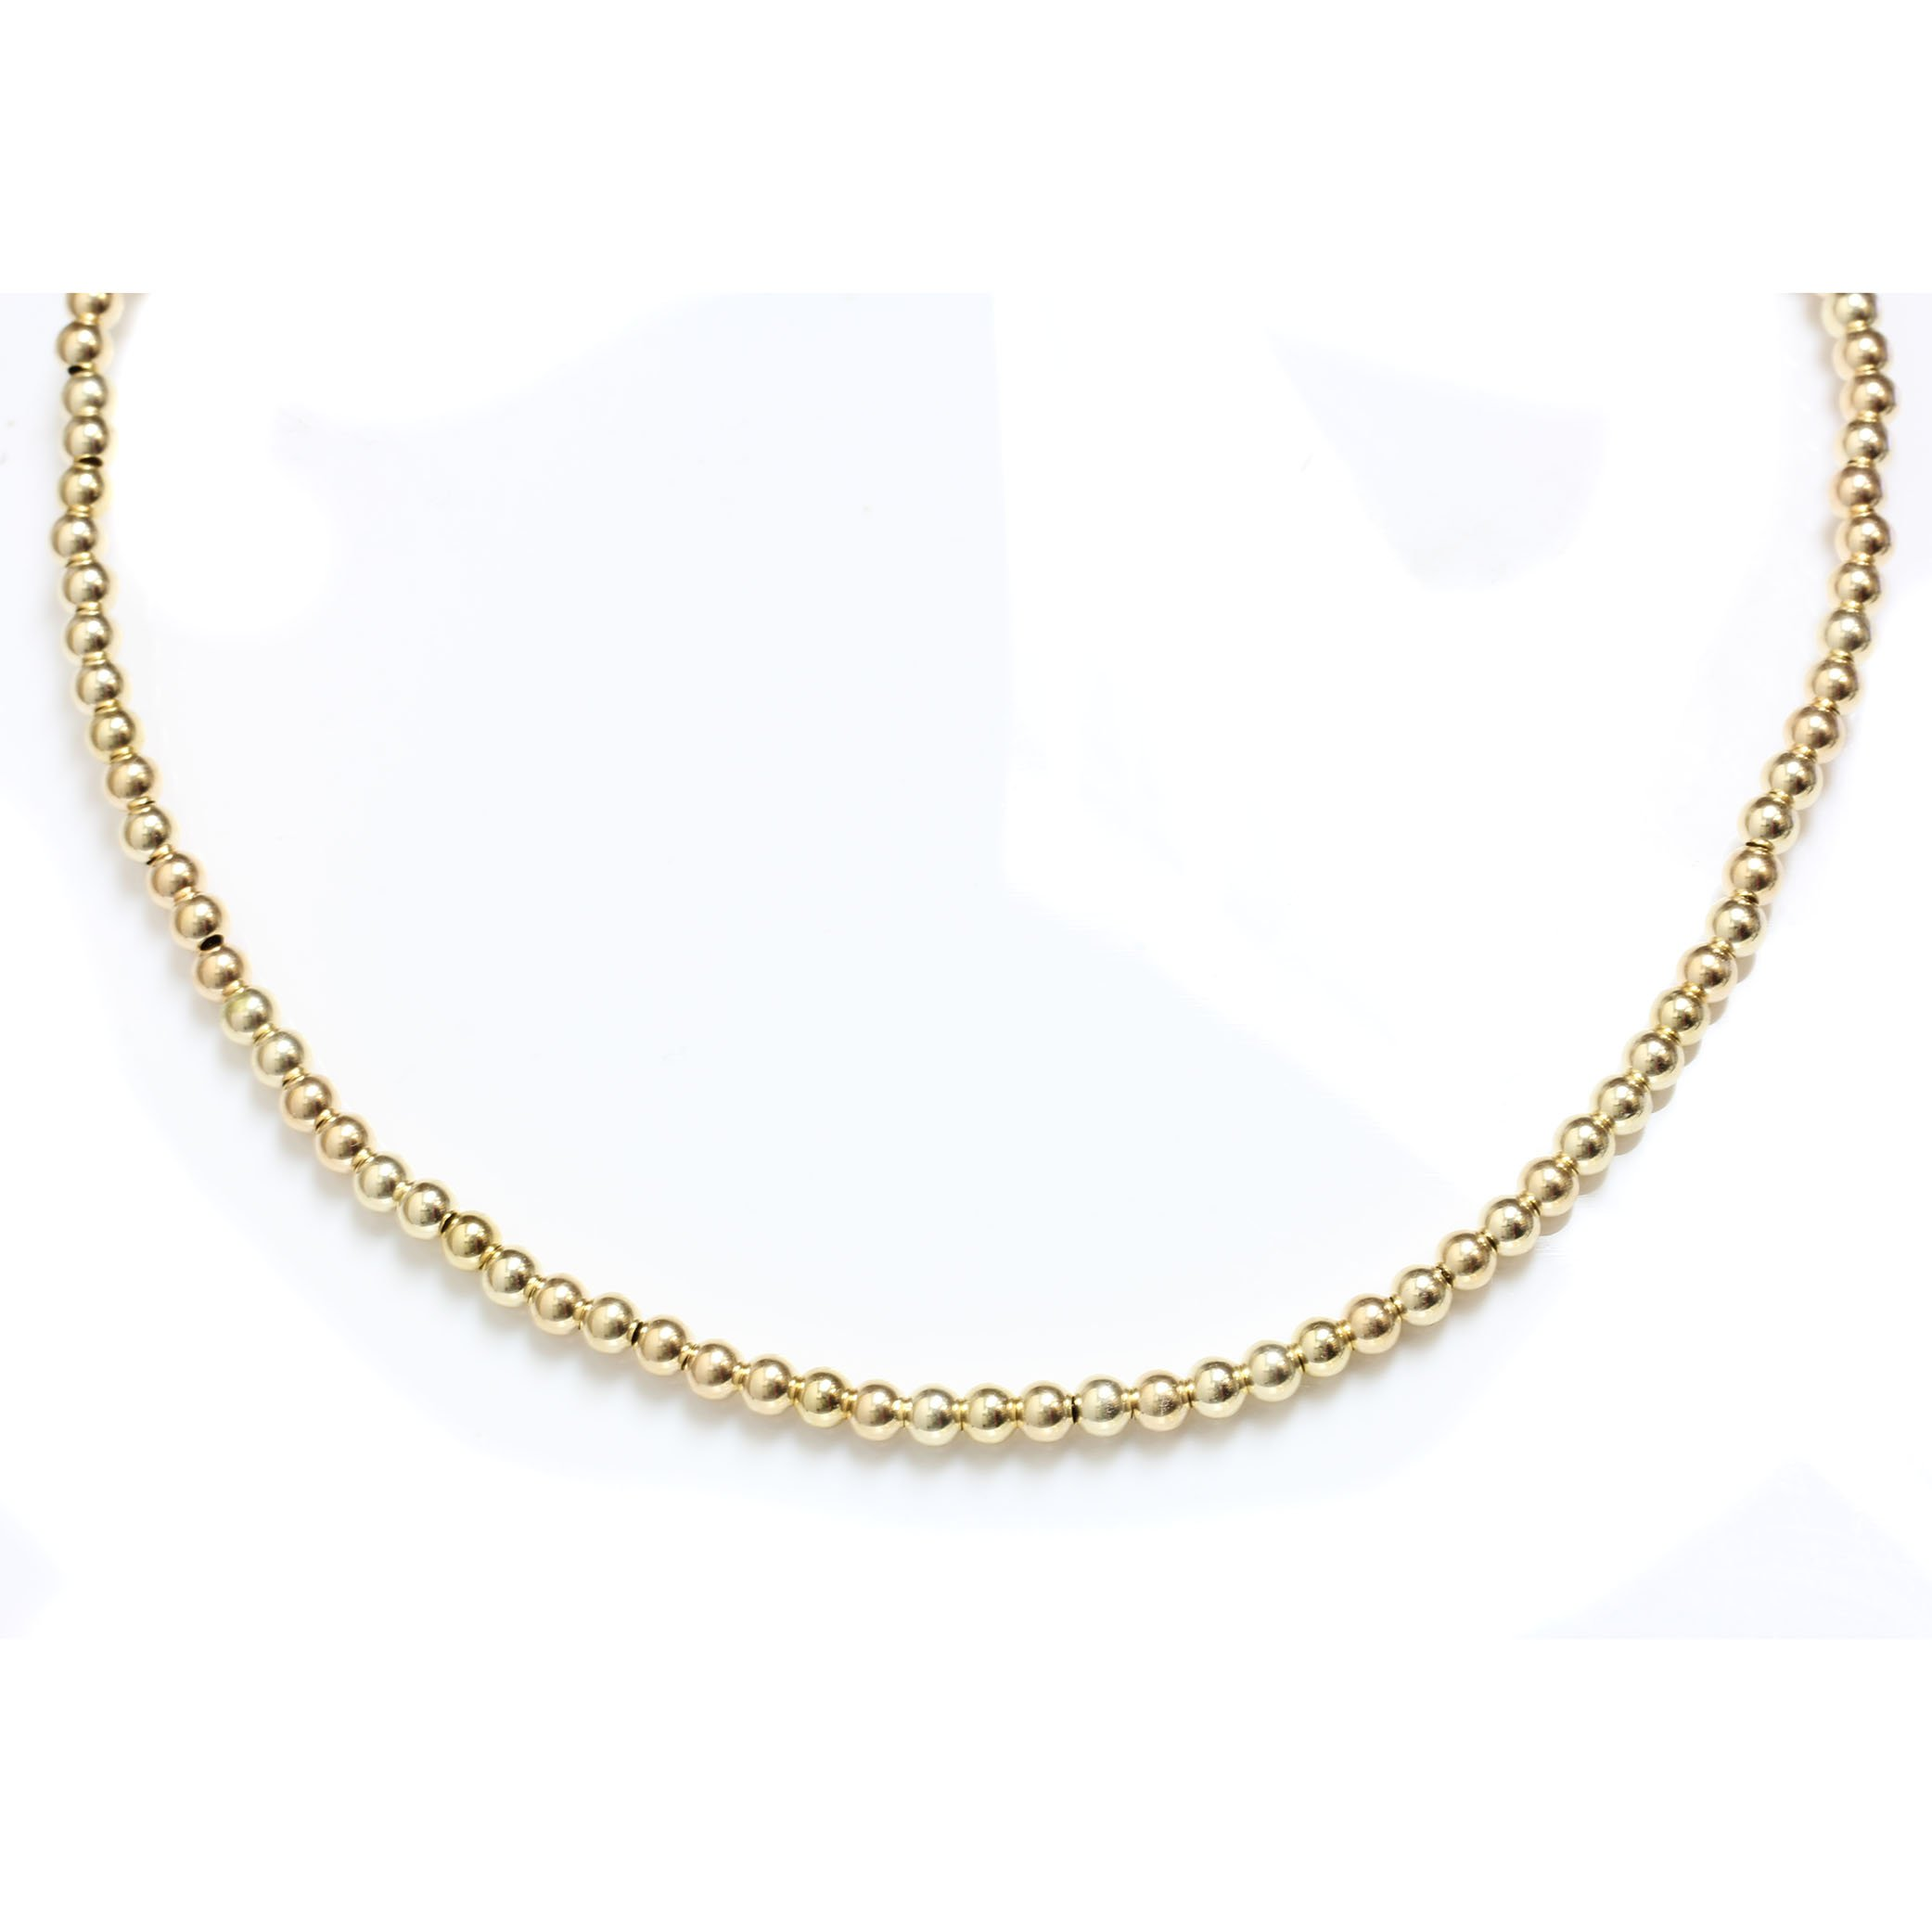 Seven Seas Pearls Gold Filled Beaded Ball Necklace with Lobster Clasp 5 mm Beads 14'' to 24'' (Yellow-Gold-Filled, 16)